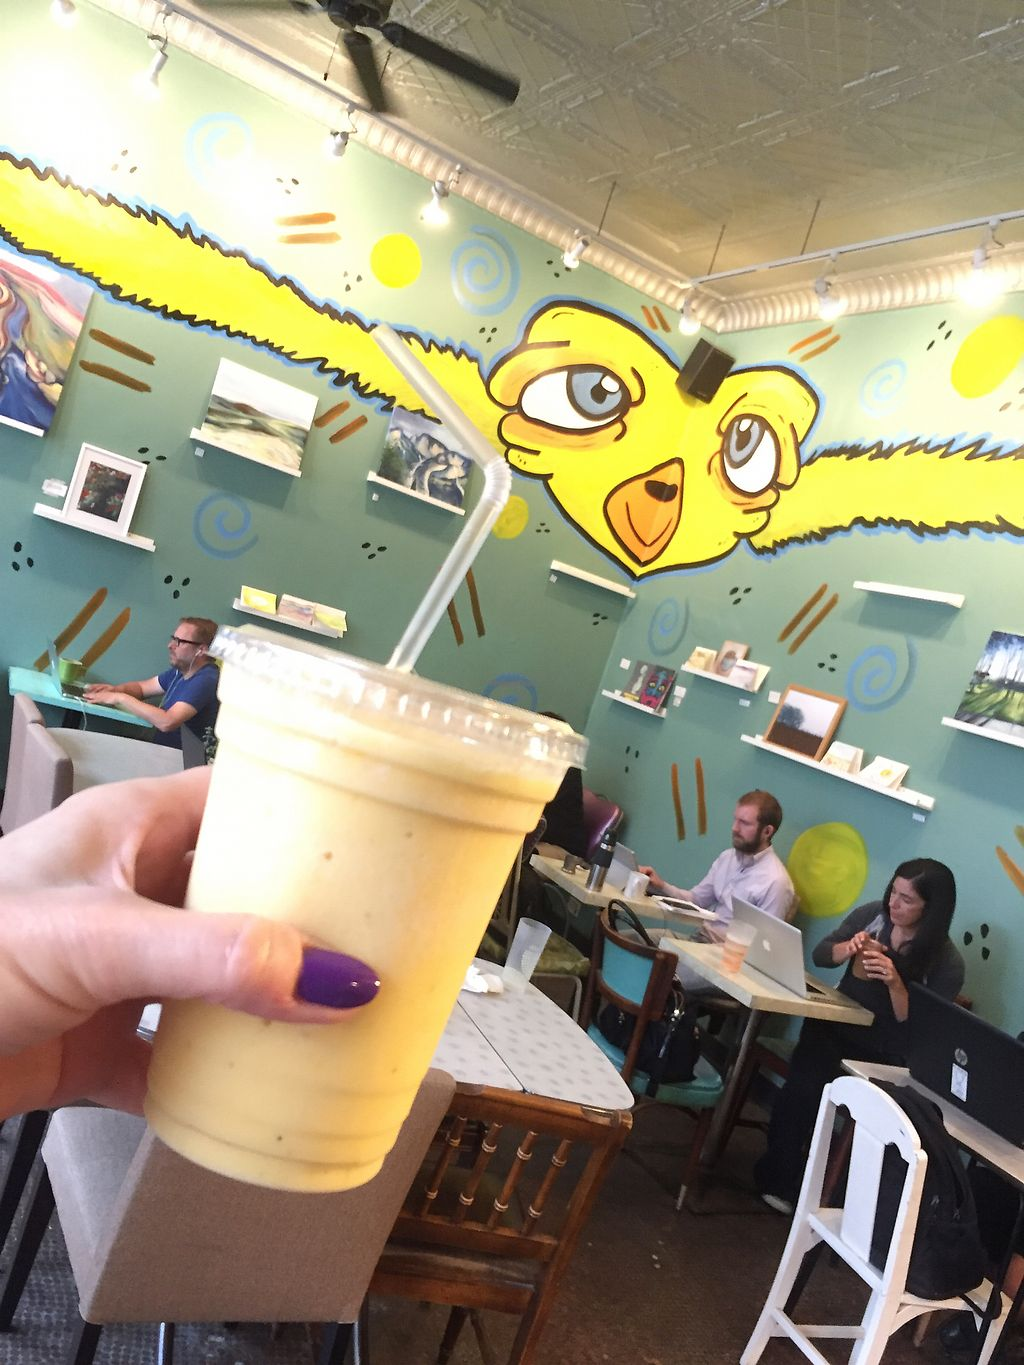 """Photo of Delicious Cafe  by <a href=""""/members/profile/happycowgirl"""">happycowgirl</a> <br/>mango colada - mango, pineapple, banana, coconut milk (vegan) <br/> August 4, 2017  - <a href='/contact/abuse/image/17202/288745'>Report</a>"""